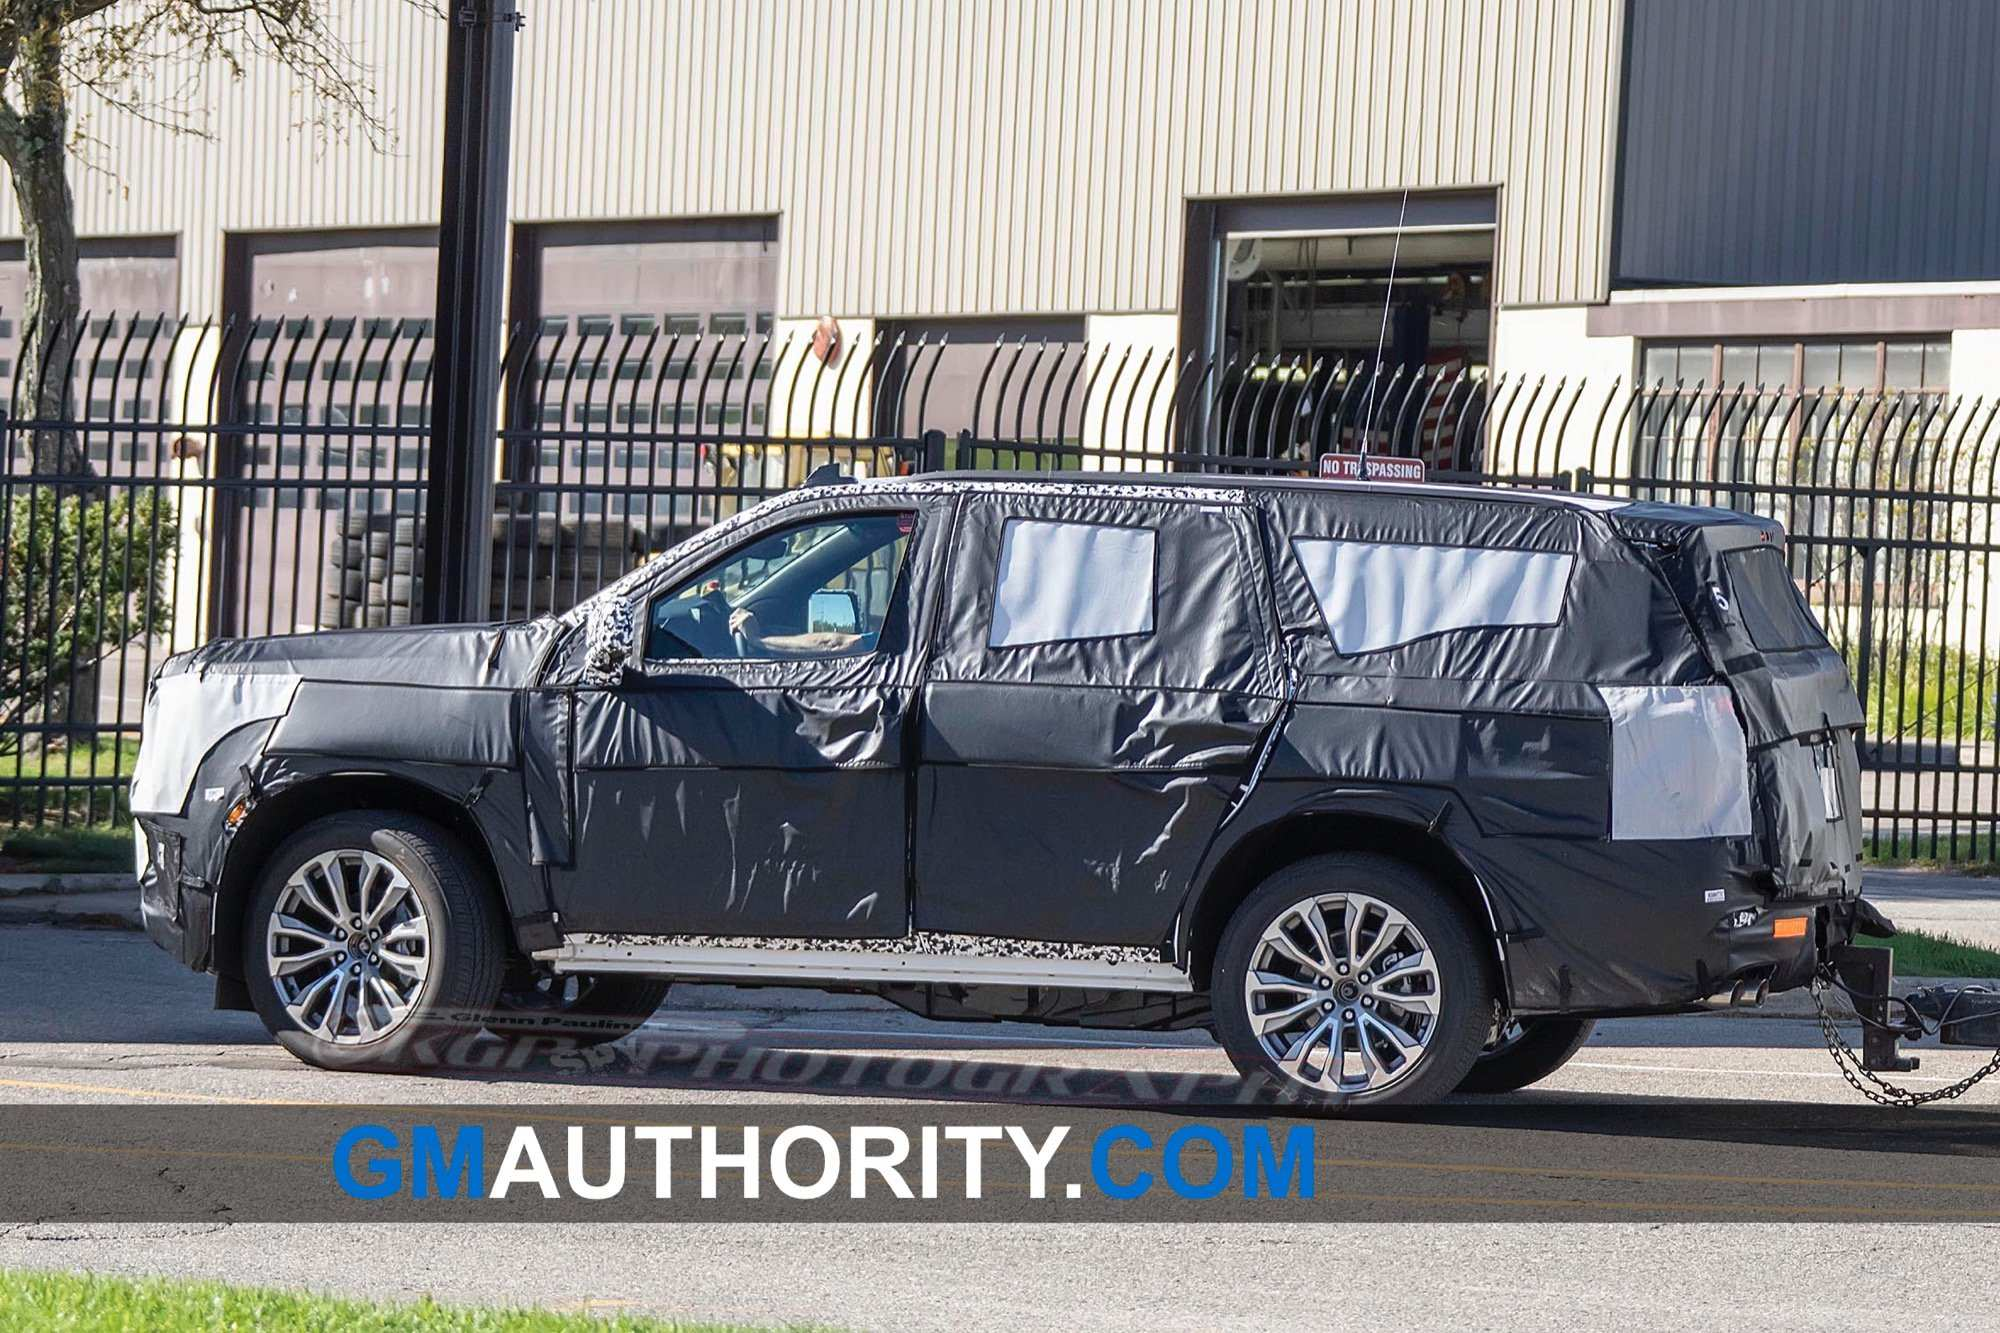 19 All New GMC Yukon 2020 Release Date Images